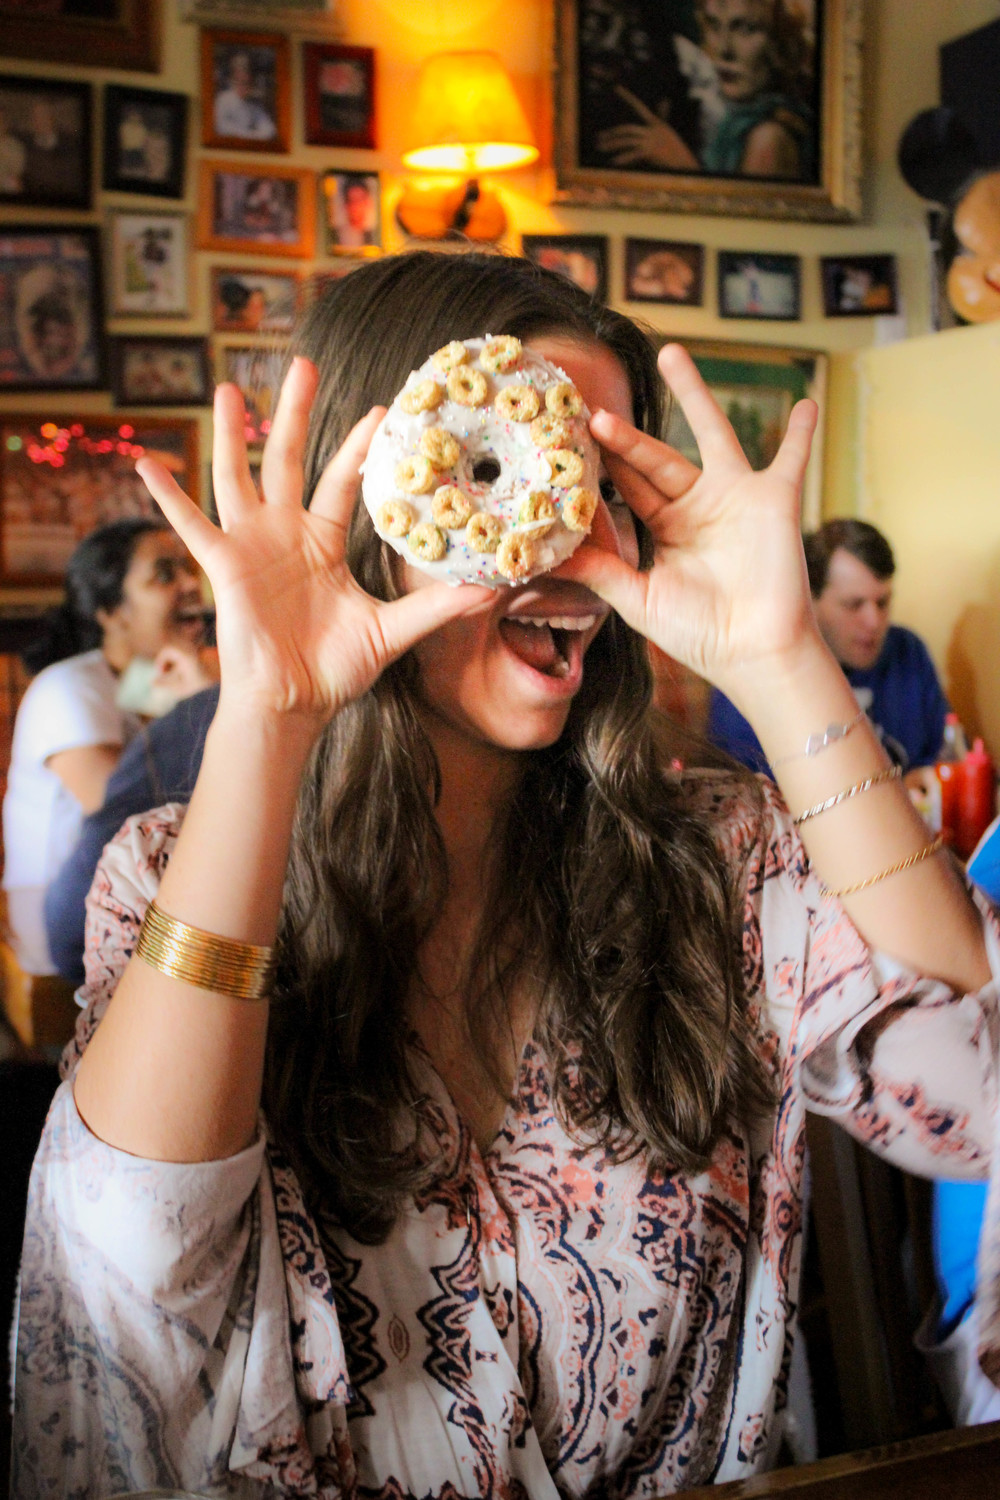 Zehra having fun with the  Cap'n crunch cake doughnut